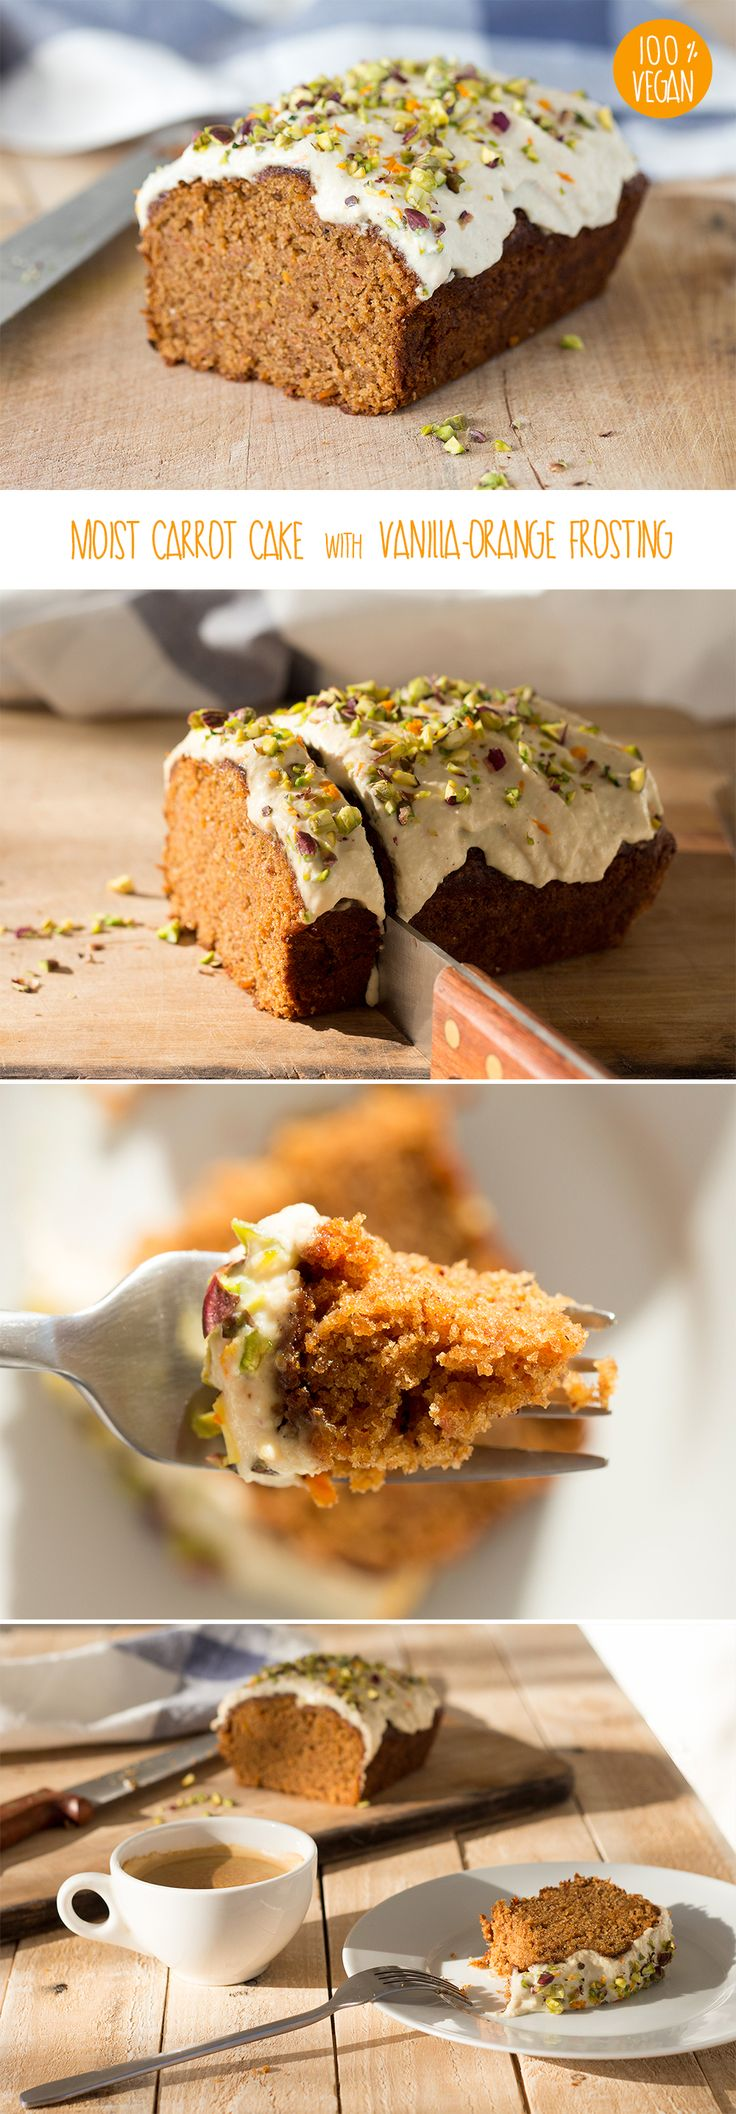 This carrot cake loaf with orange vanilla frosting captured my attention! It would be great as a neighbor gift or to hide in the closet and enjoy myself!  #vegan #dairyfree